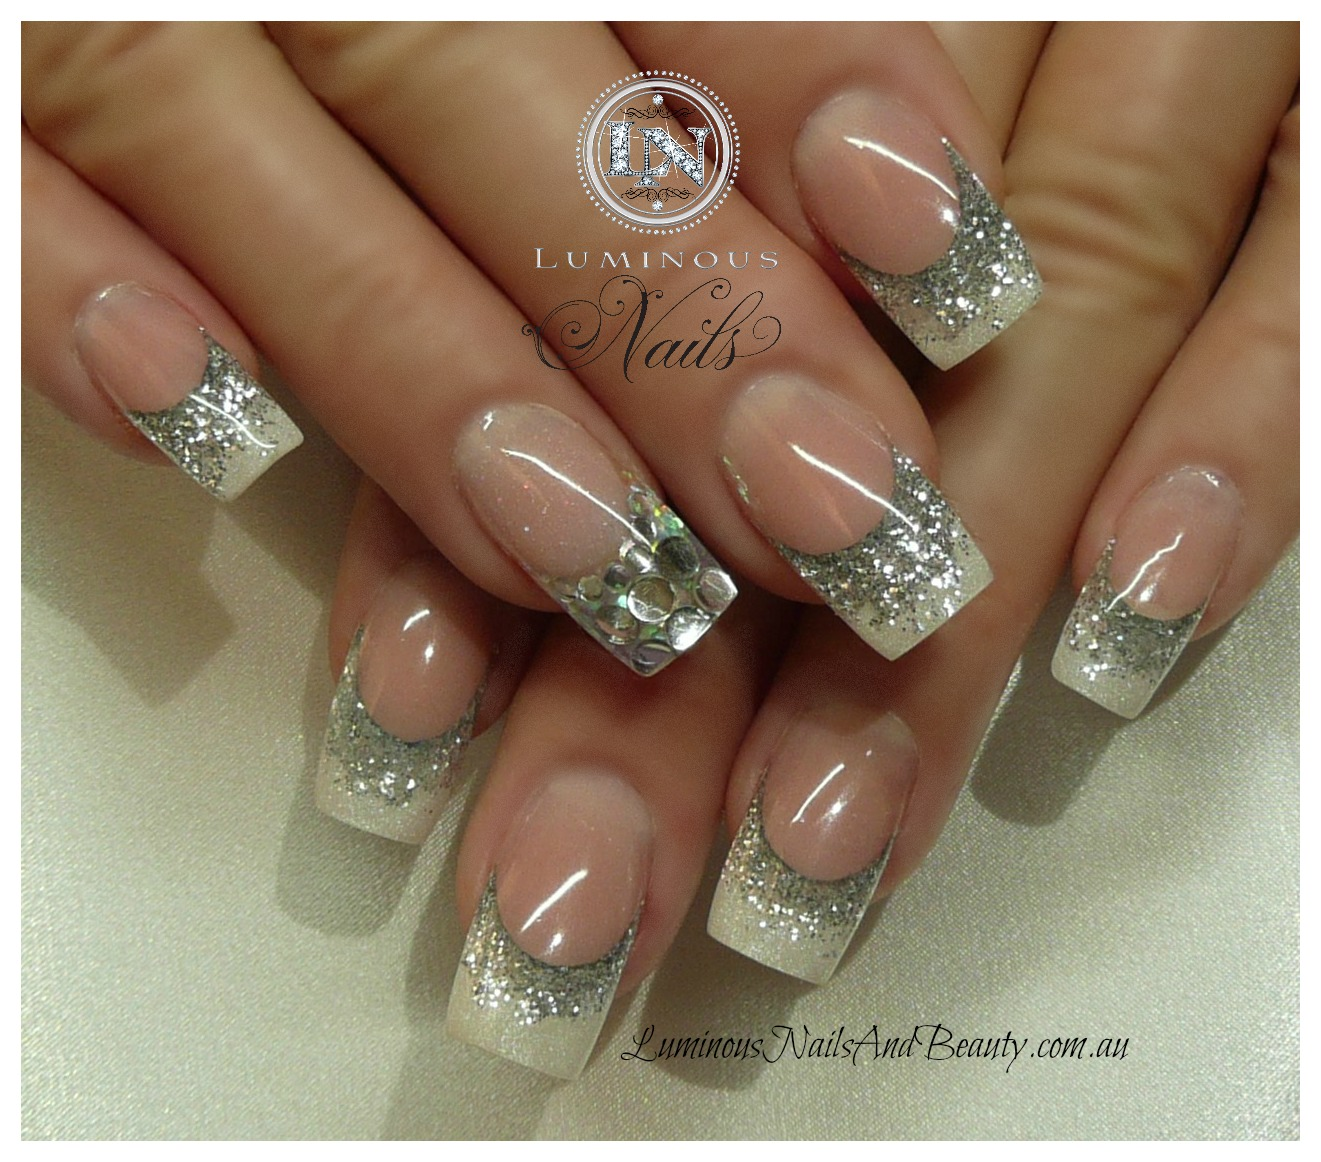 Silver gel nails - Expression Nails